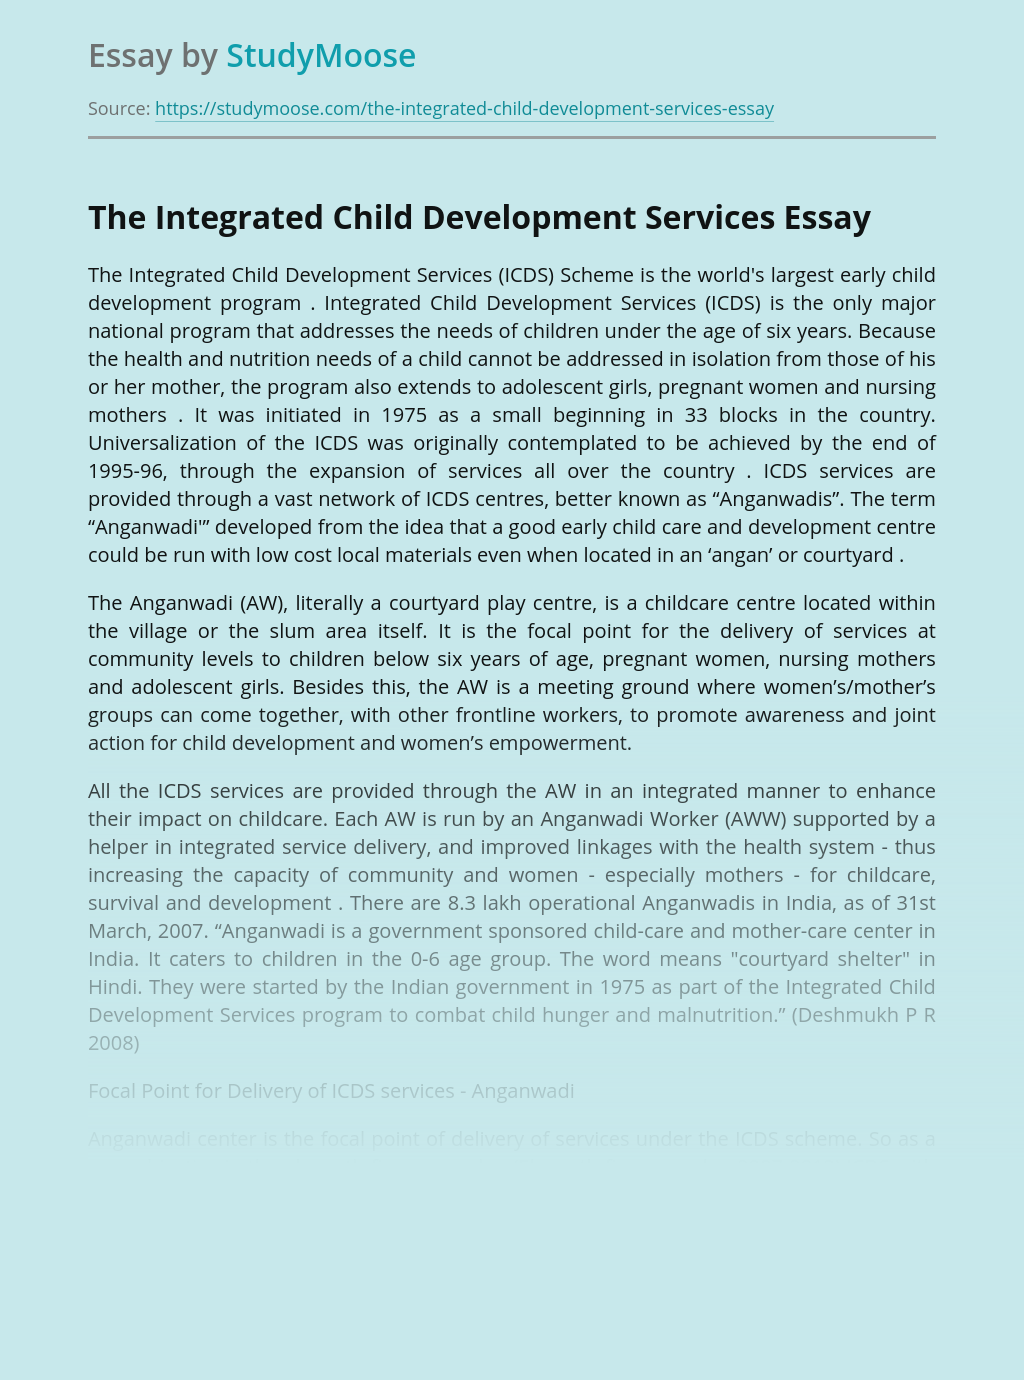 The Integrated Child Development Services